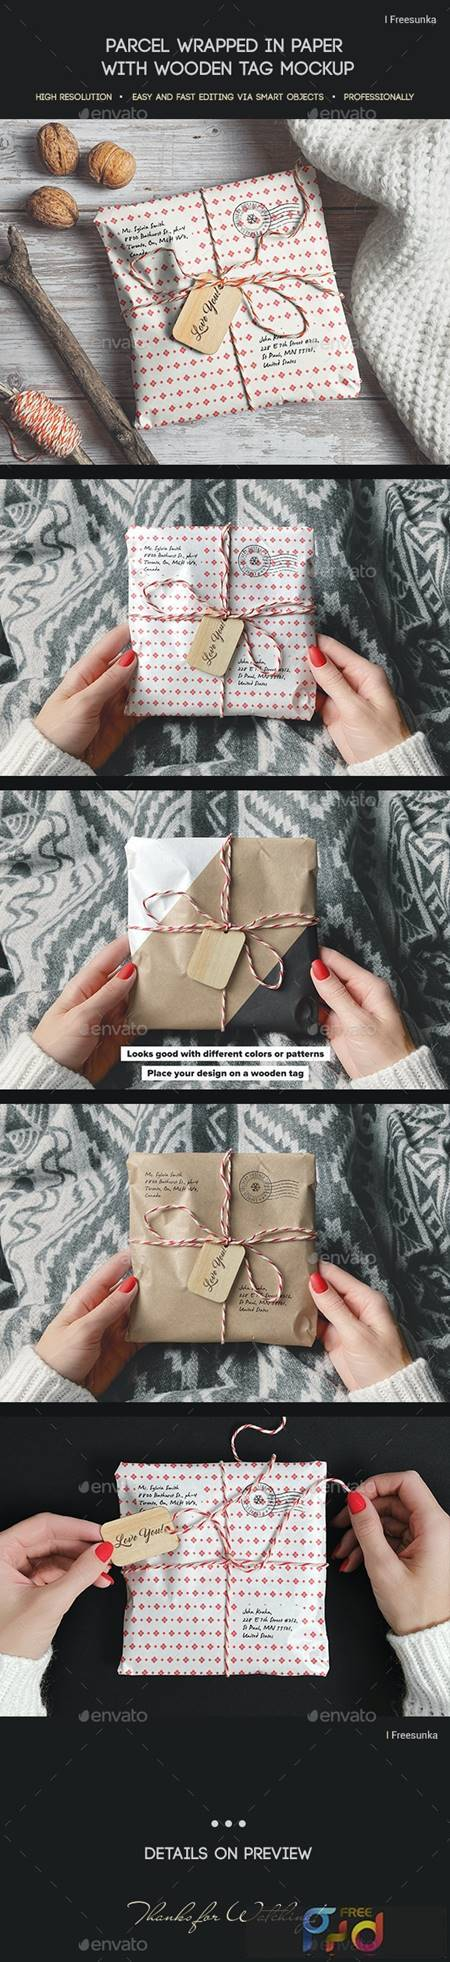 Parcel Wrapped In Paper With Wooden Tag Mockup - 29385413 1